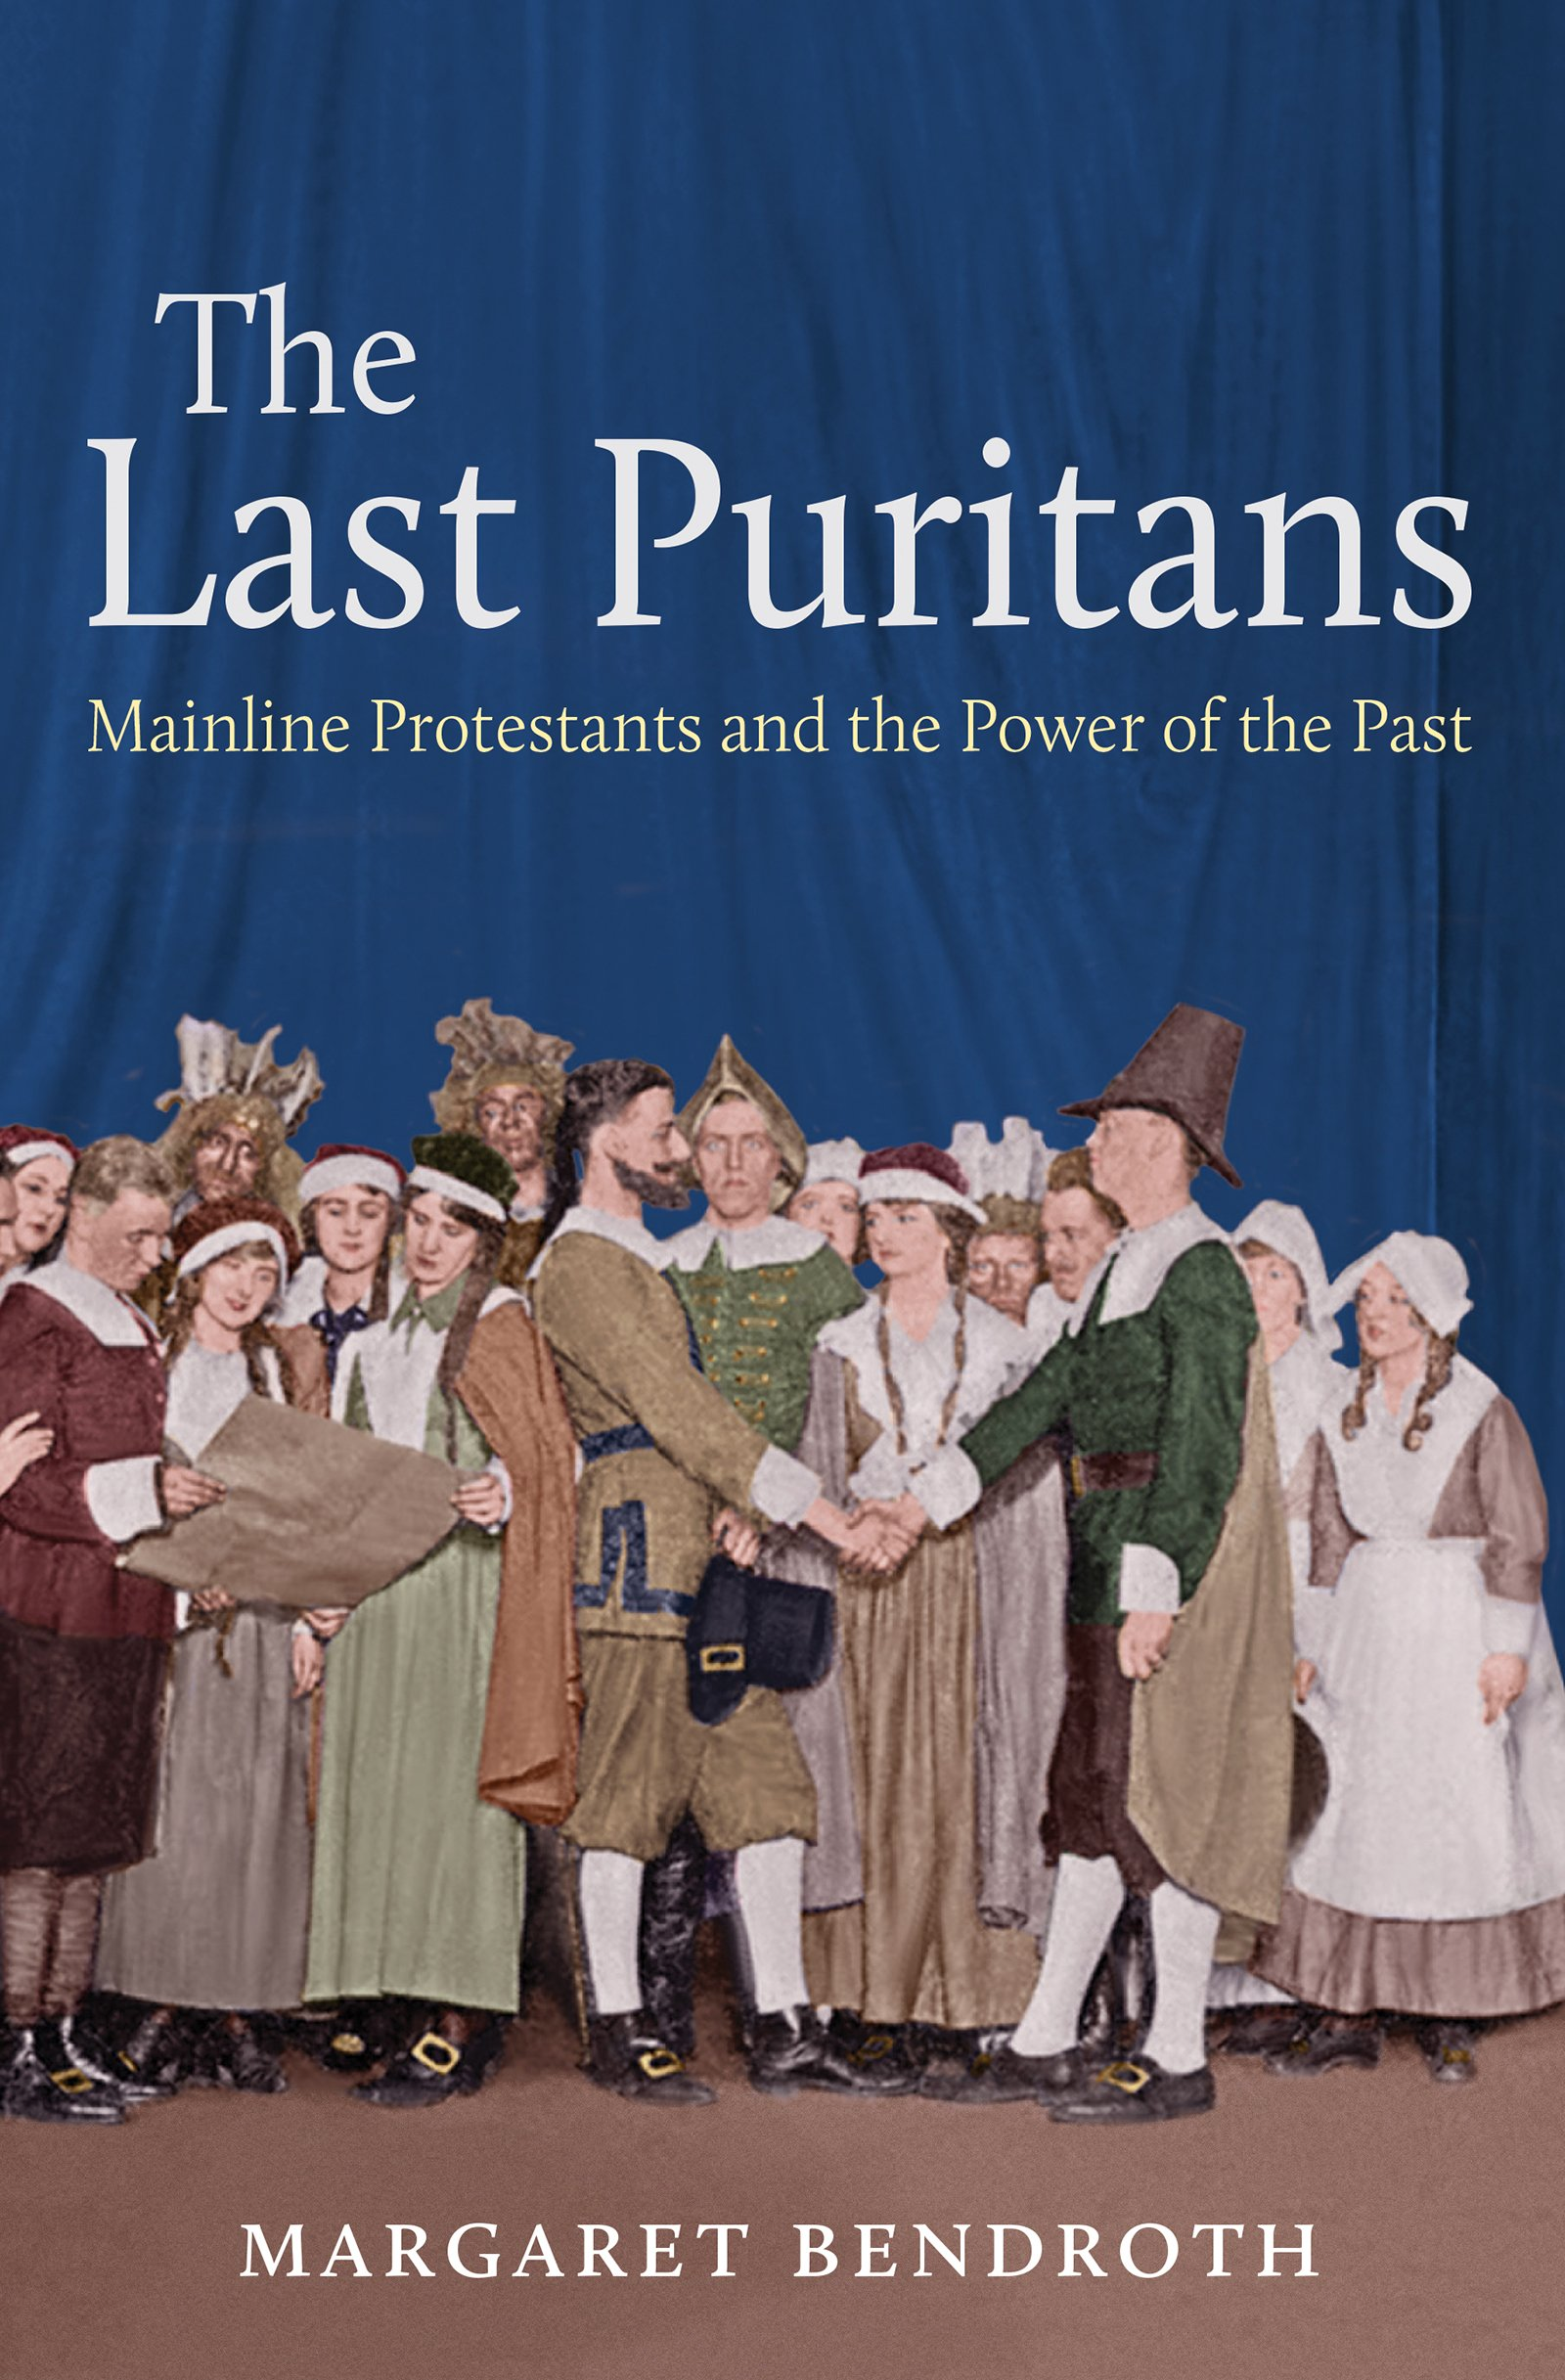 the last puritans mainline protestants and the power of the past the last puritans mainline protestants and the power of the past margaret bendroth 9781469624006 com books